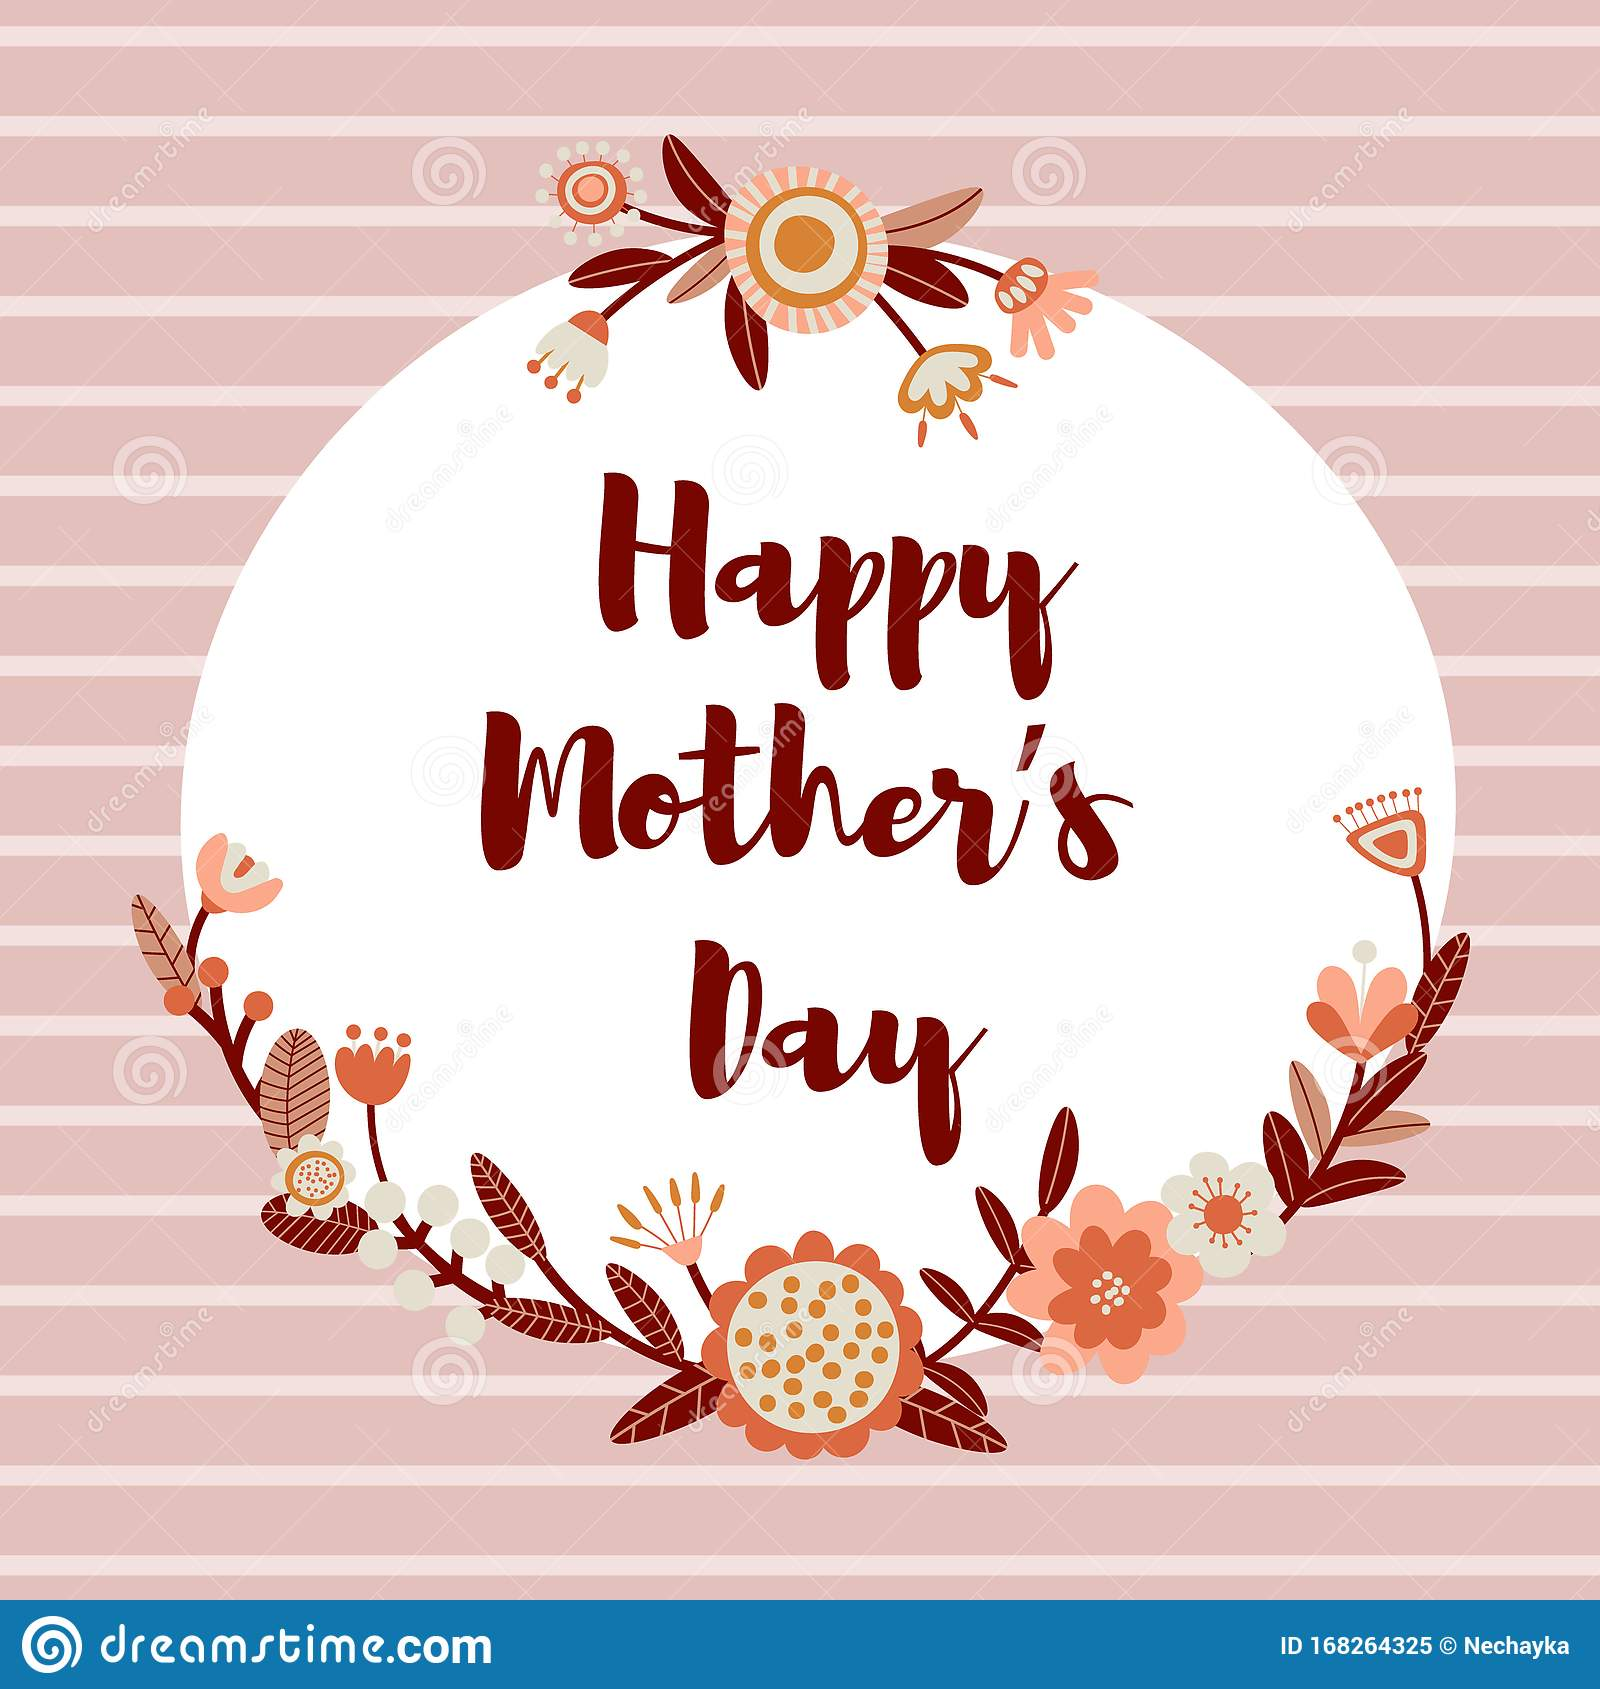 Happy Mothers Card Background With Cute Folk Flowers Floral Printable Banner With Text Cartoon Flat Illustration Stock Vector Illustration Of Card Cute 168264325